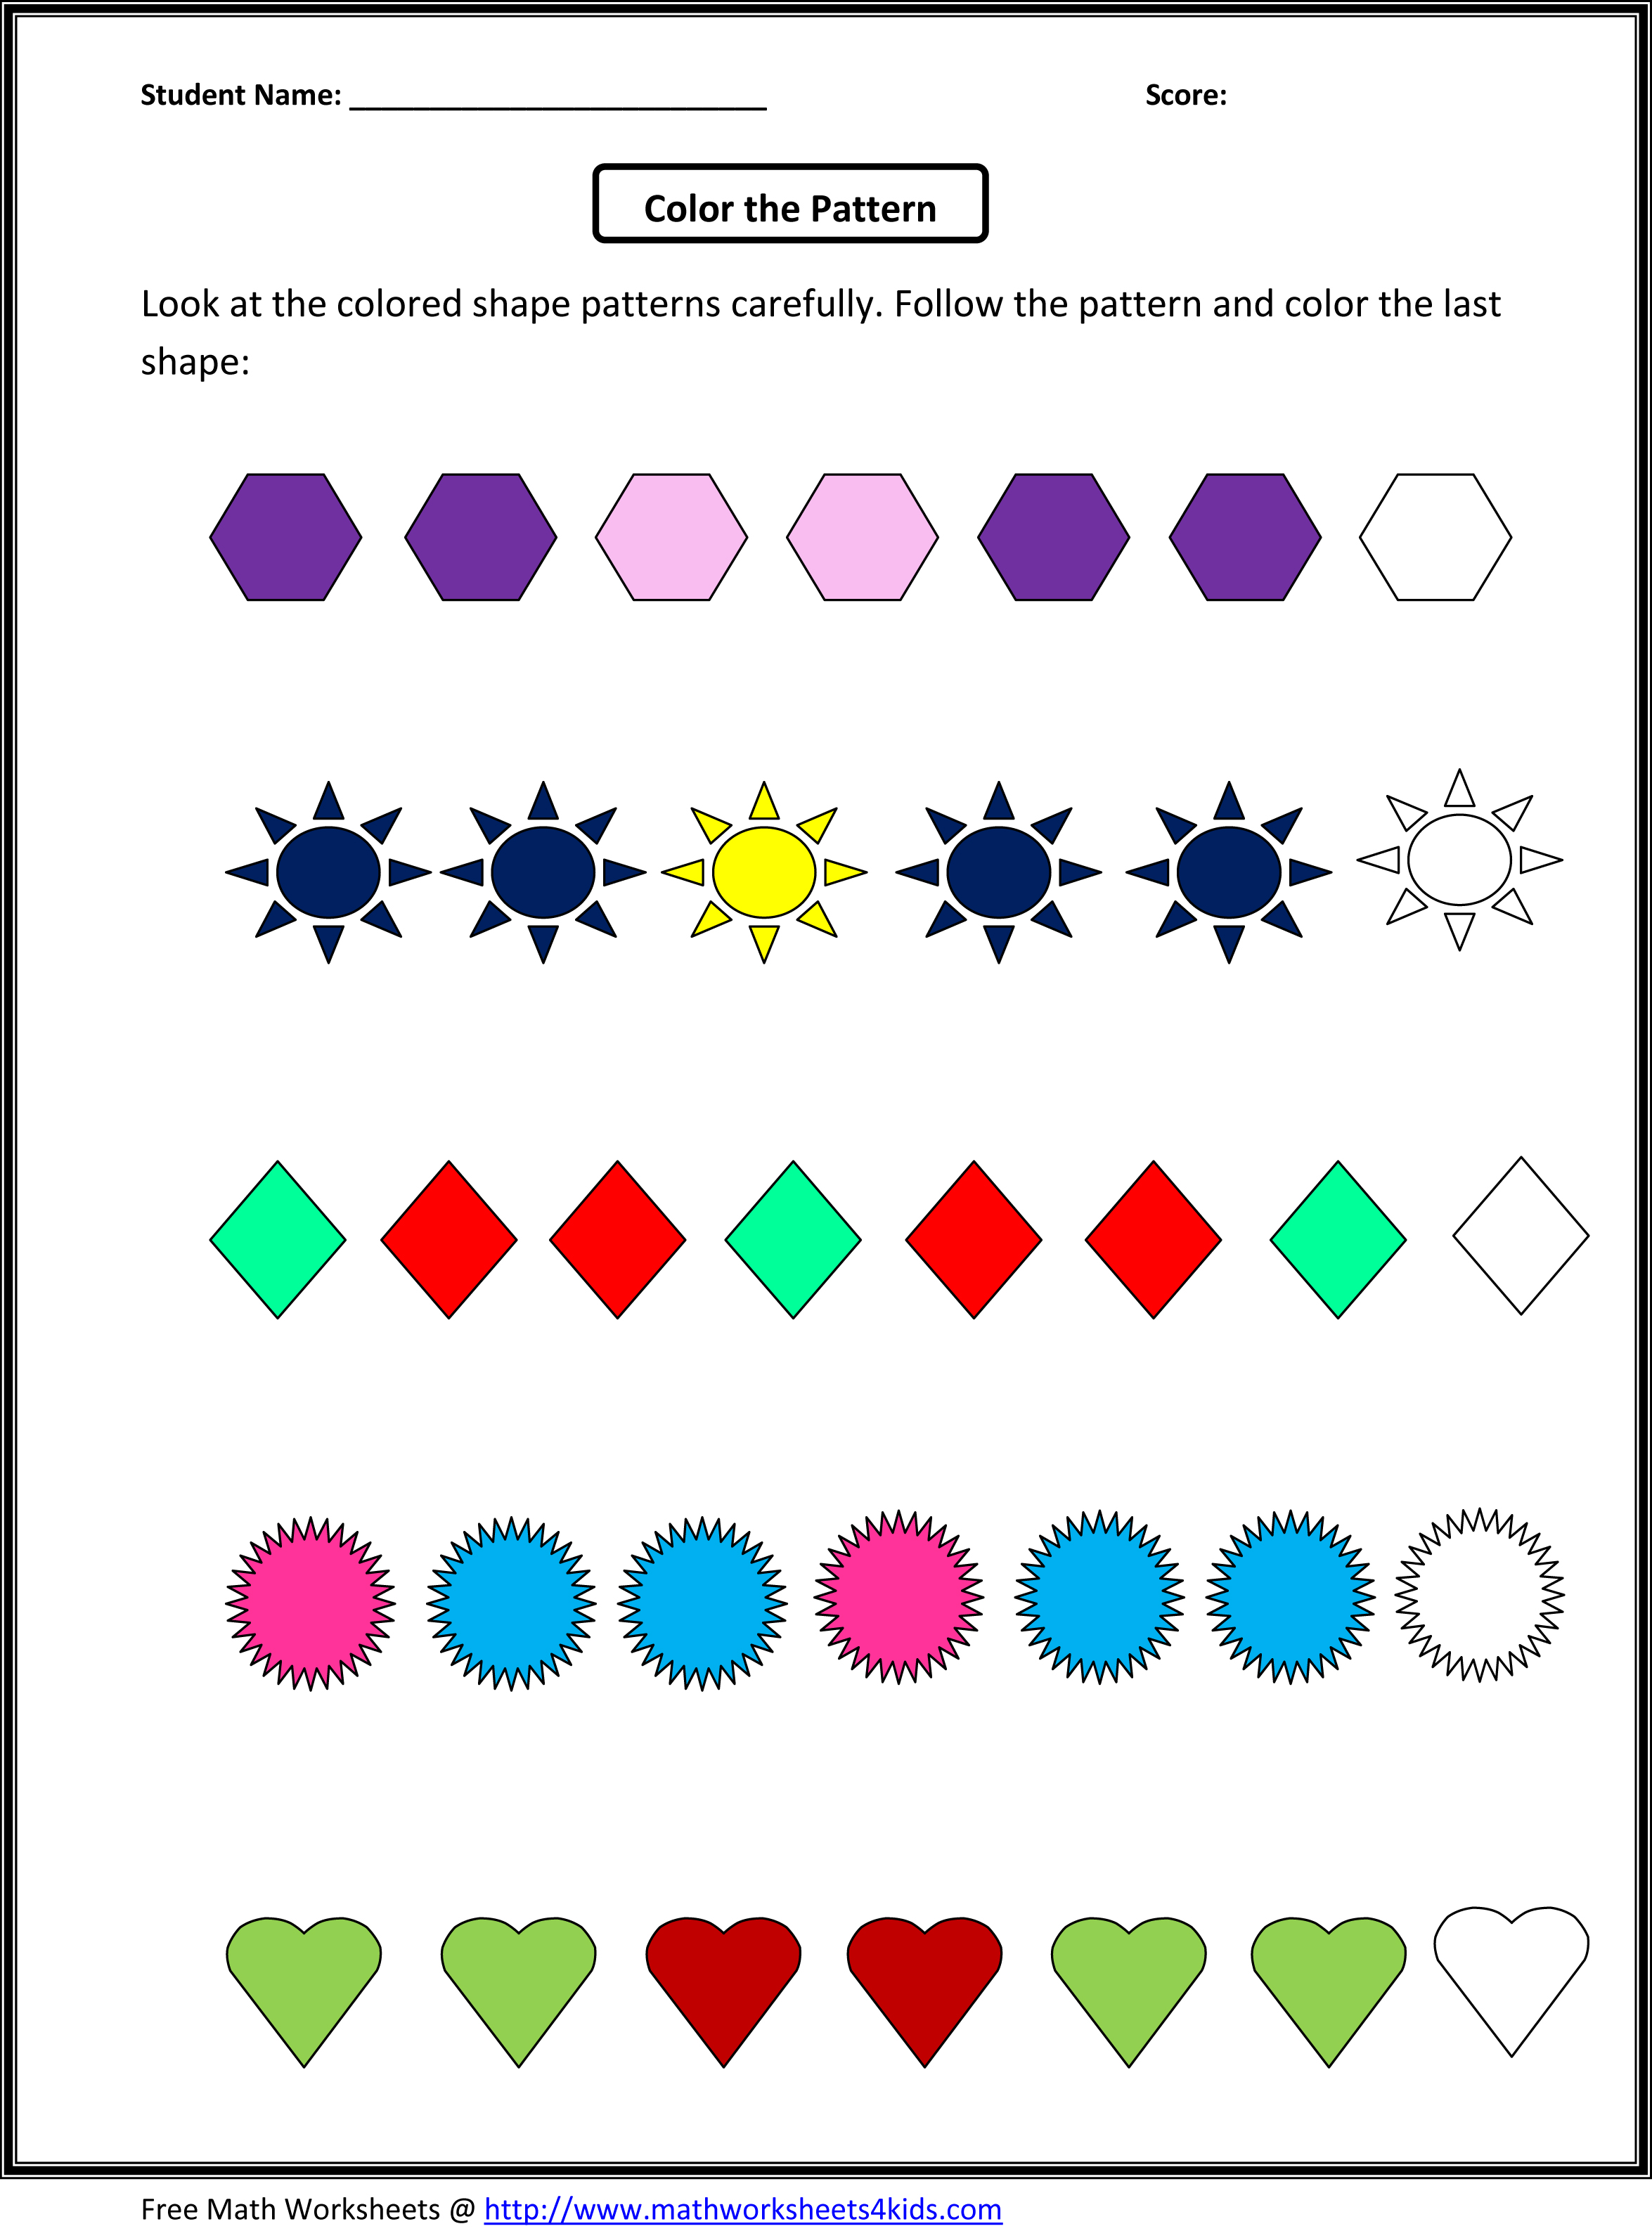 Complete Shape Patterns Worksheets | Apps Directories